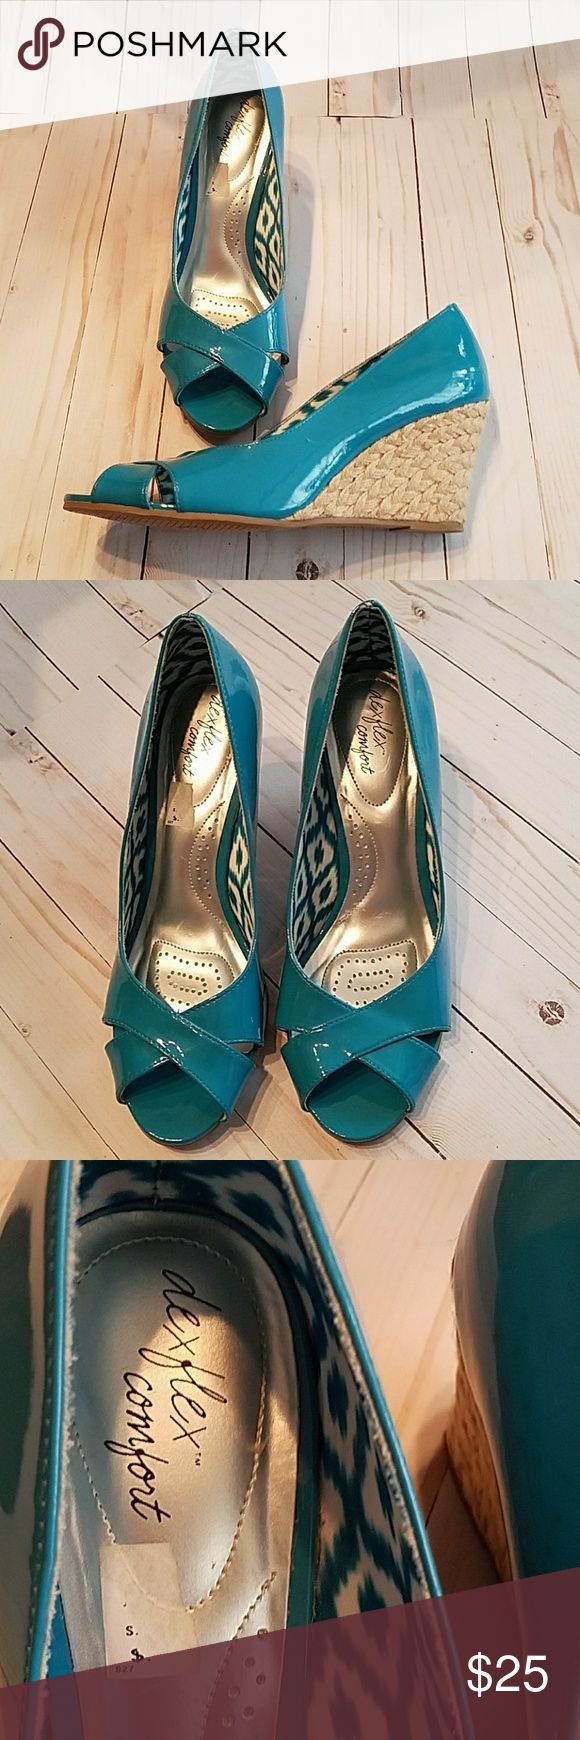 dex flex comfort Turquoise Wedge 10W dex flex comfort Excellent used condition  Very light wear Heel section some threads frayed Otherwise shoes are in perfect shape  NO odor NO scuffs  NO SHOE BOX  Women's wedge sandals Peep toe Inside cushion inner heel/arch/toes Bottom sole slip resistant  Size 10W Wedge heel 3-3.2 Made in Vietnam dex flex comfort Shoes Wedges